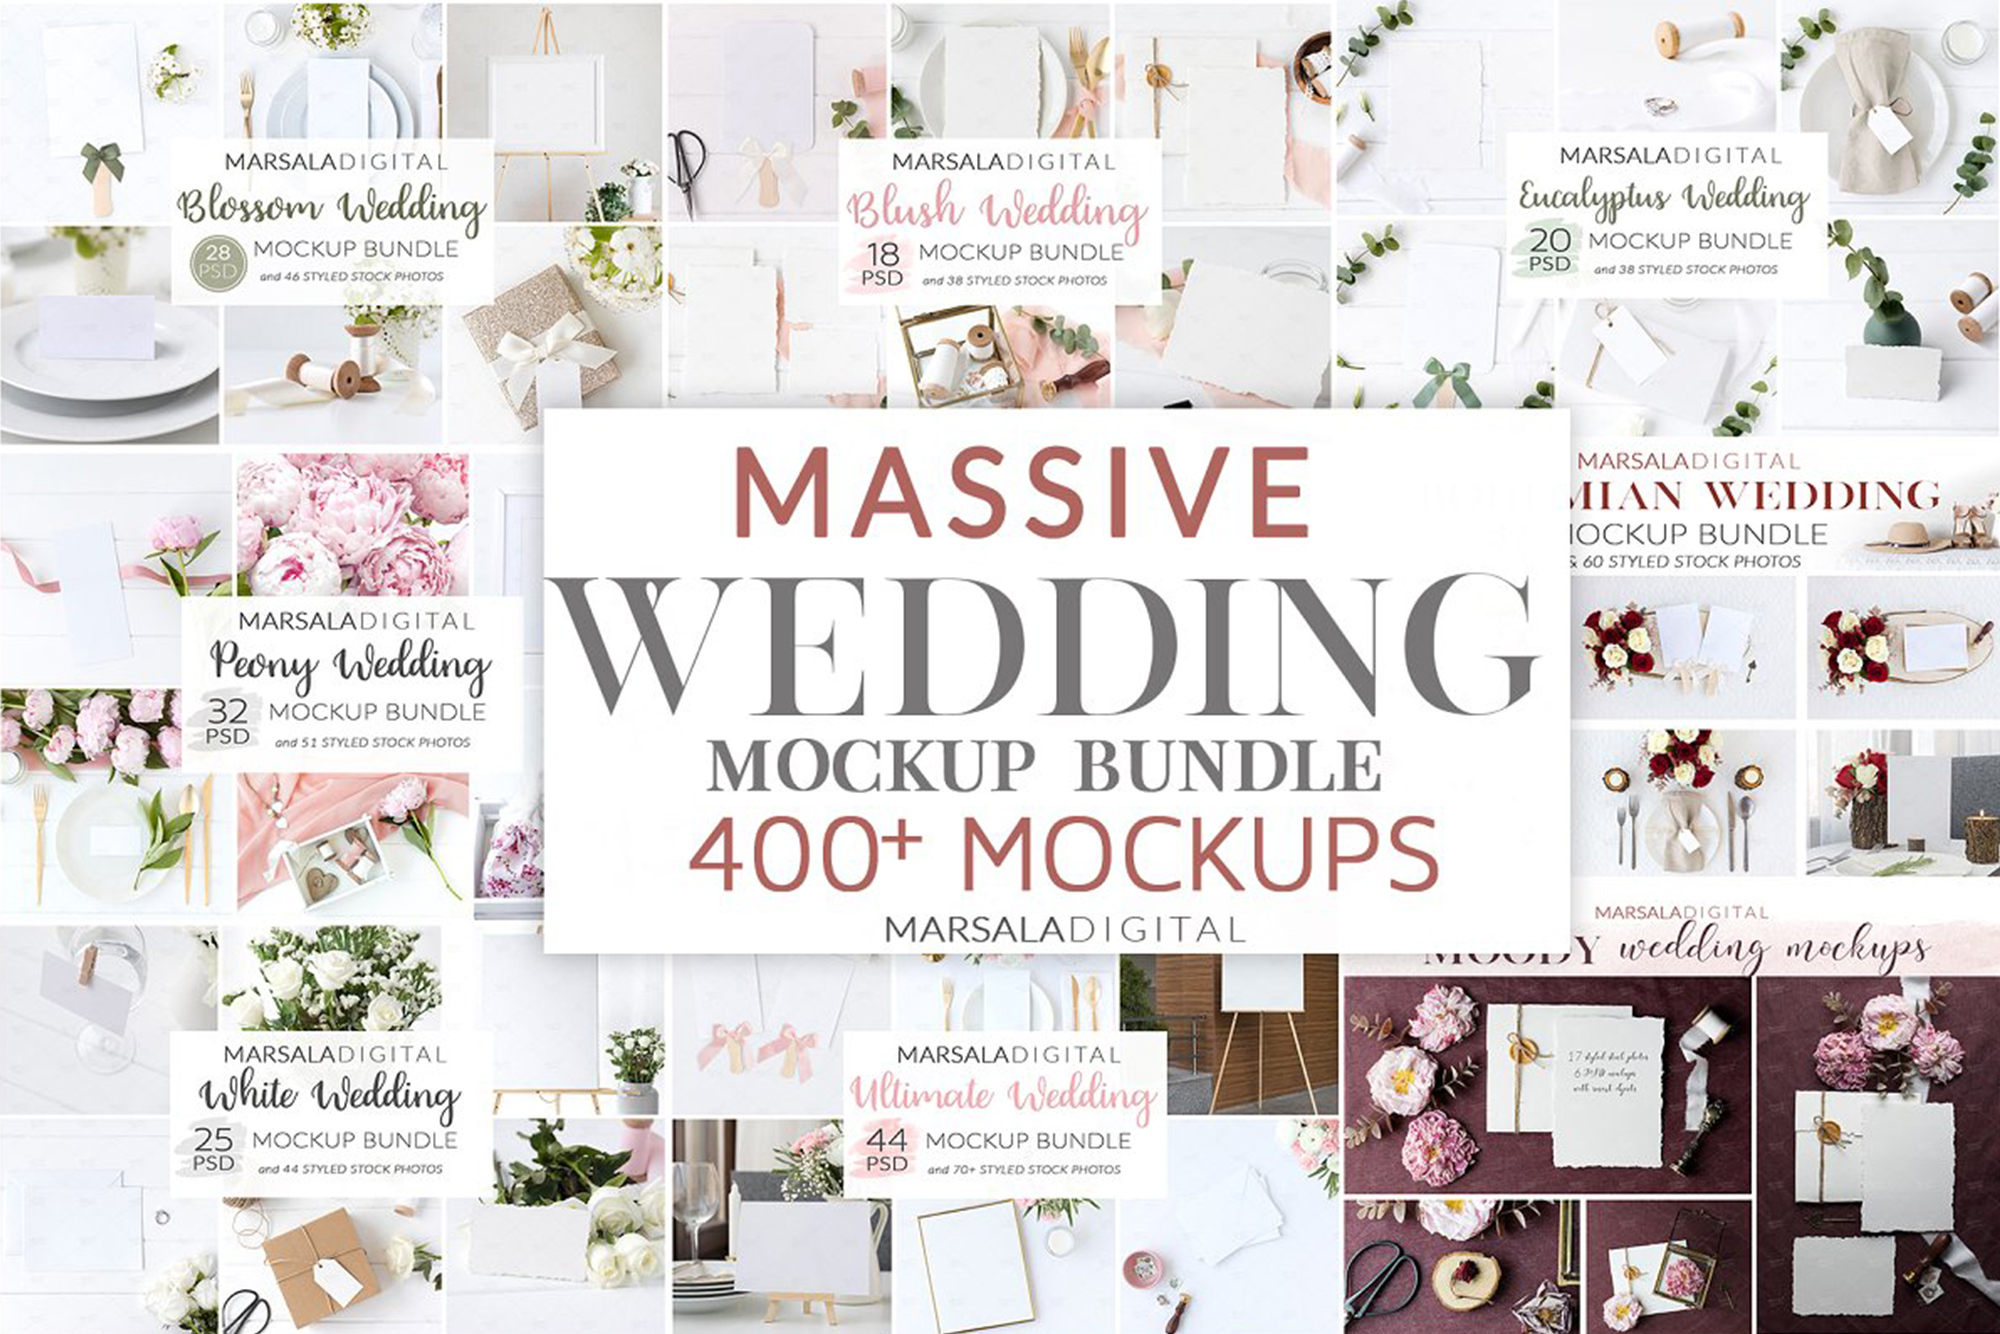 Wedding Mockup Bundle 400 Massive Wedding Mockups Bundle example image 1